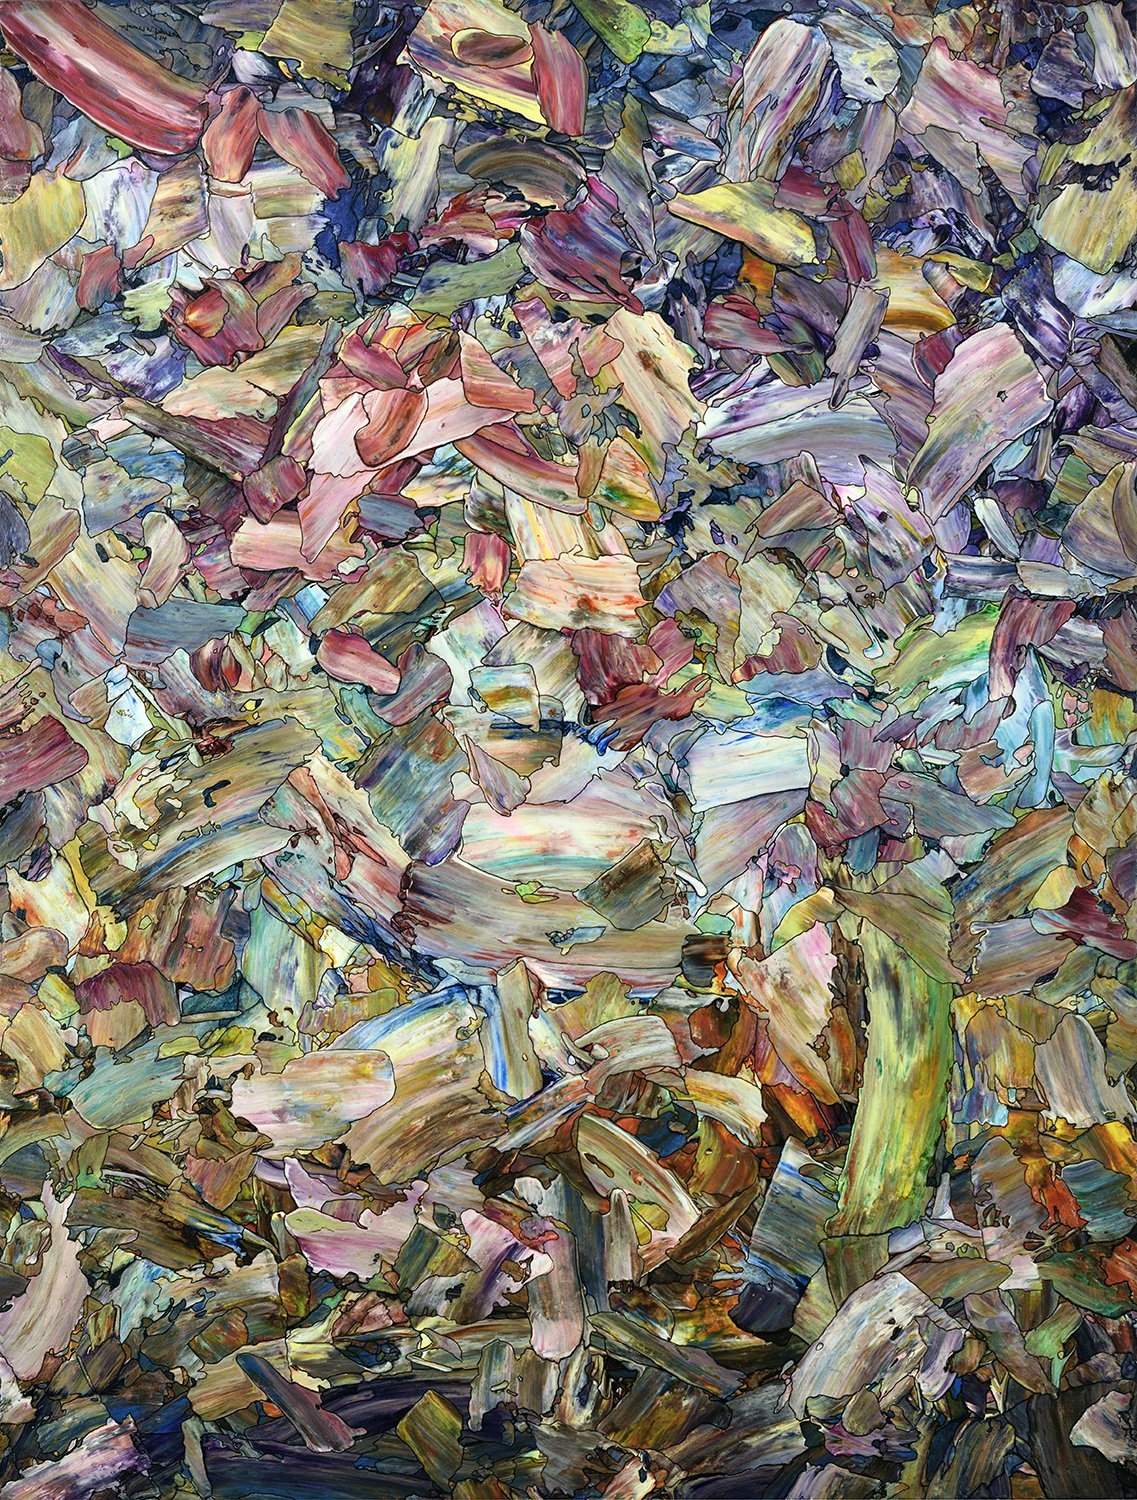 """Roadside Fragmentation"" by James W Johnson, acrylic/ink on panel, 25x19, 2014"